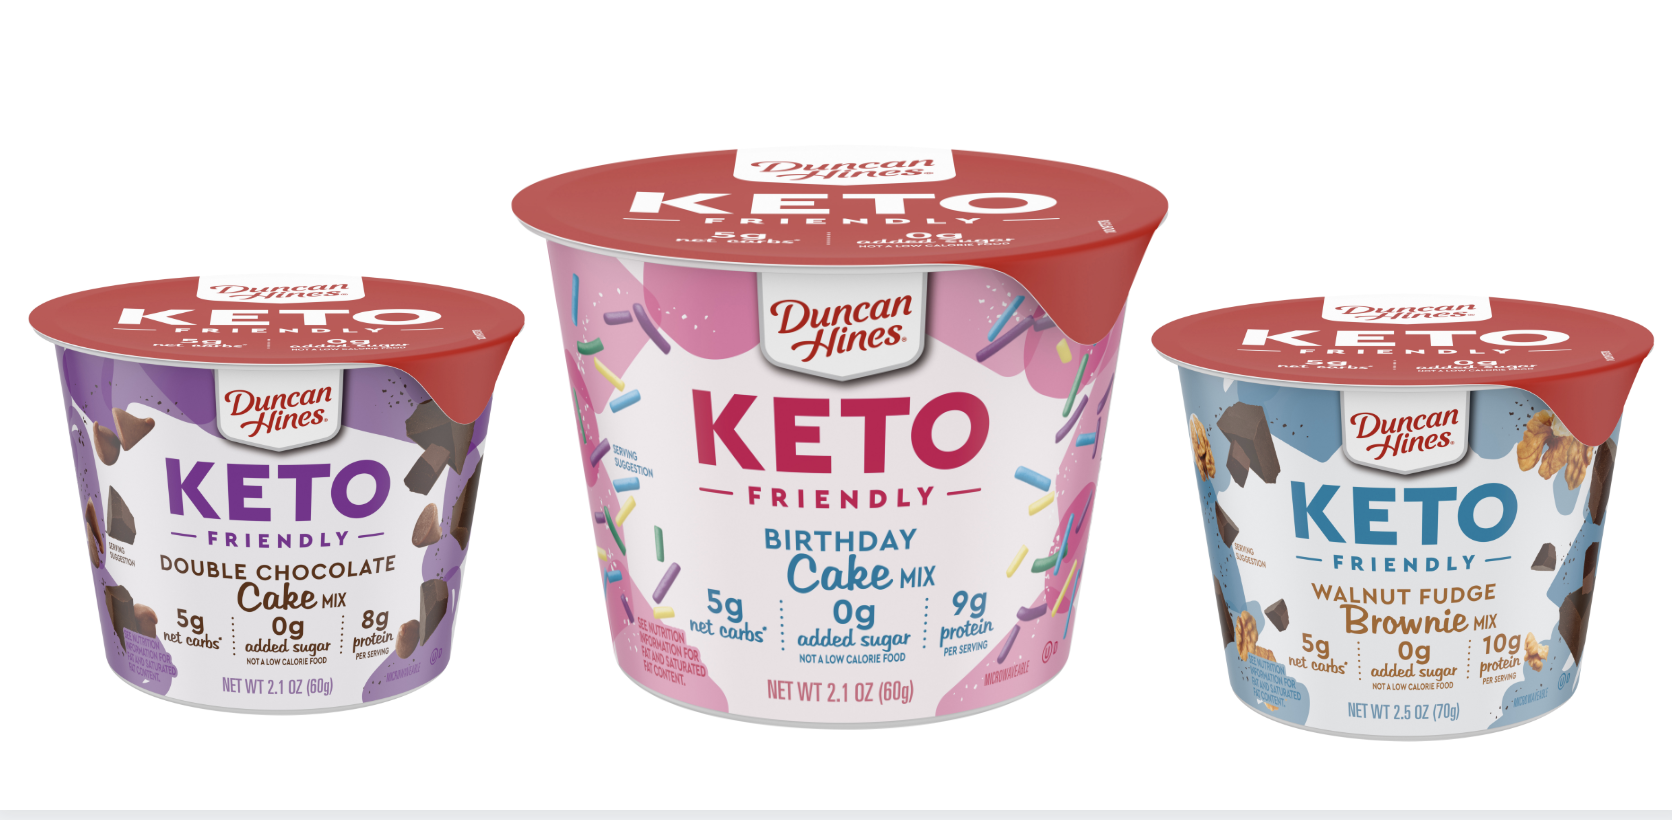 Duncan Hines Is Launching Keto Cake Cups You Can Make In The Microwave